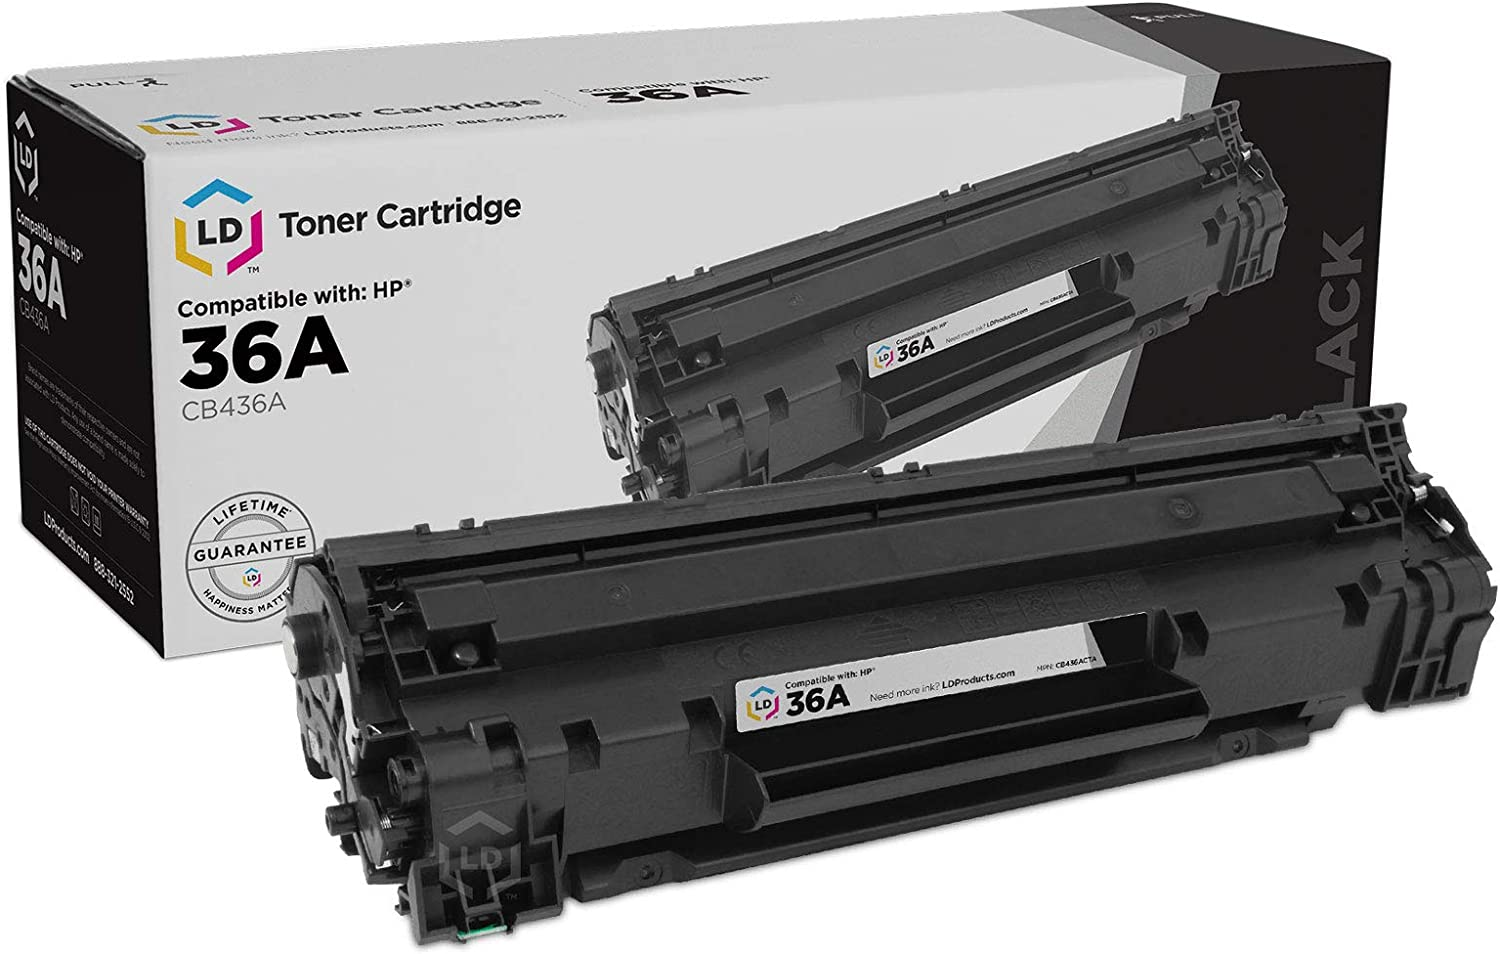 LD Compatible Toner Cartridge Replacement for HP 36A CB436A (Black)